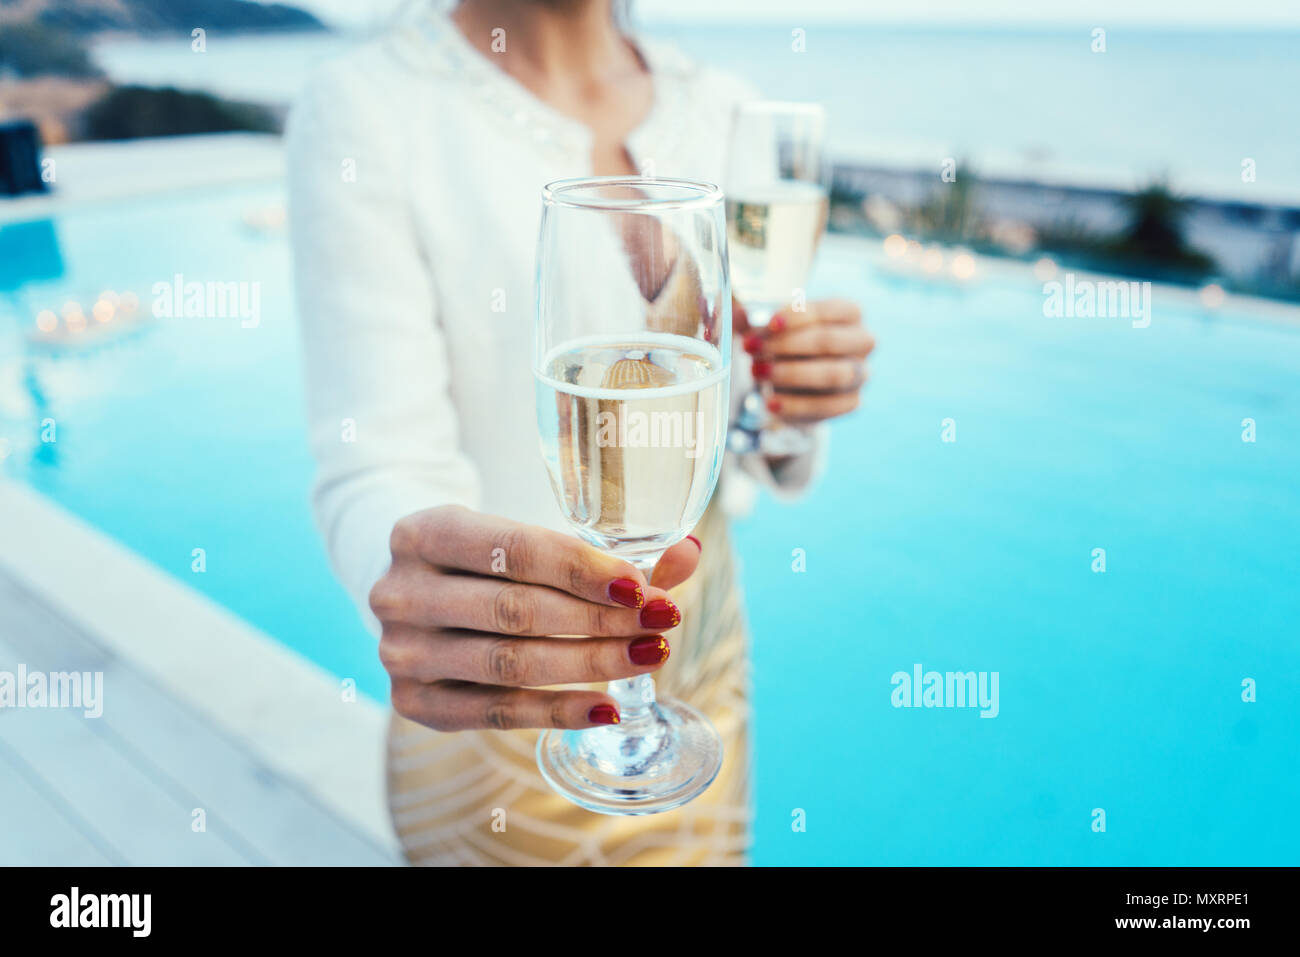 Woman handing glass of sparkling wine at pool and beach party - Stock Image